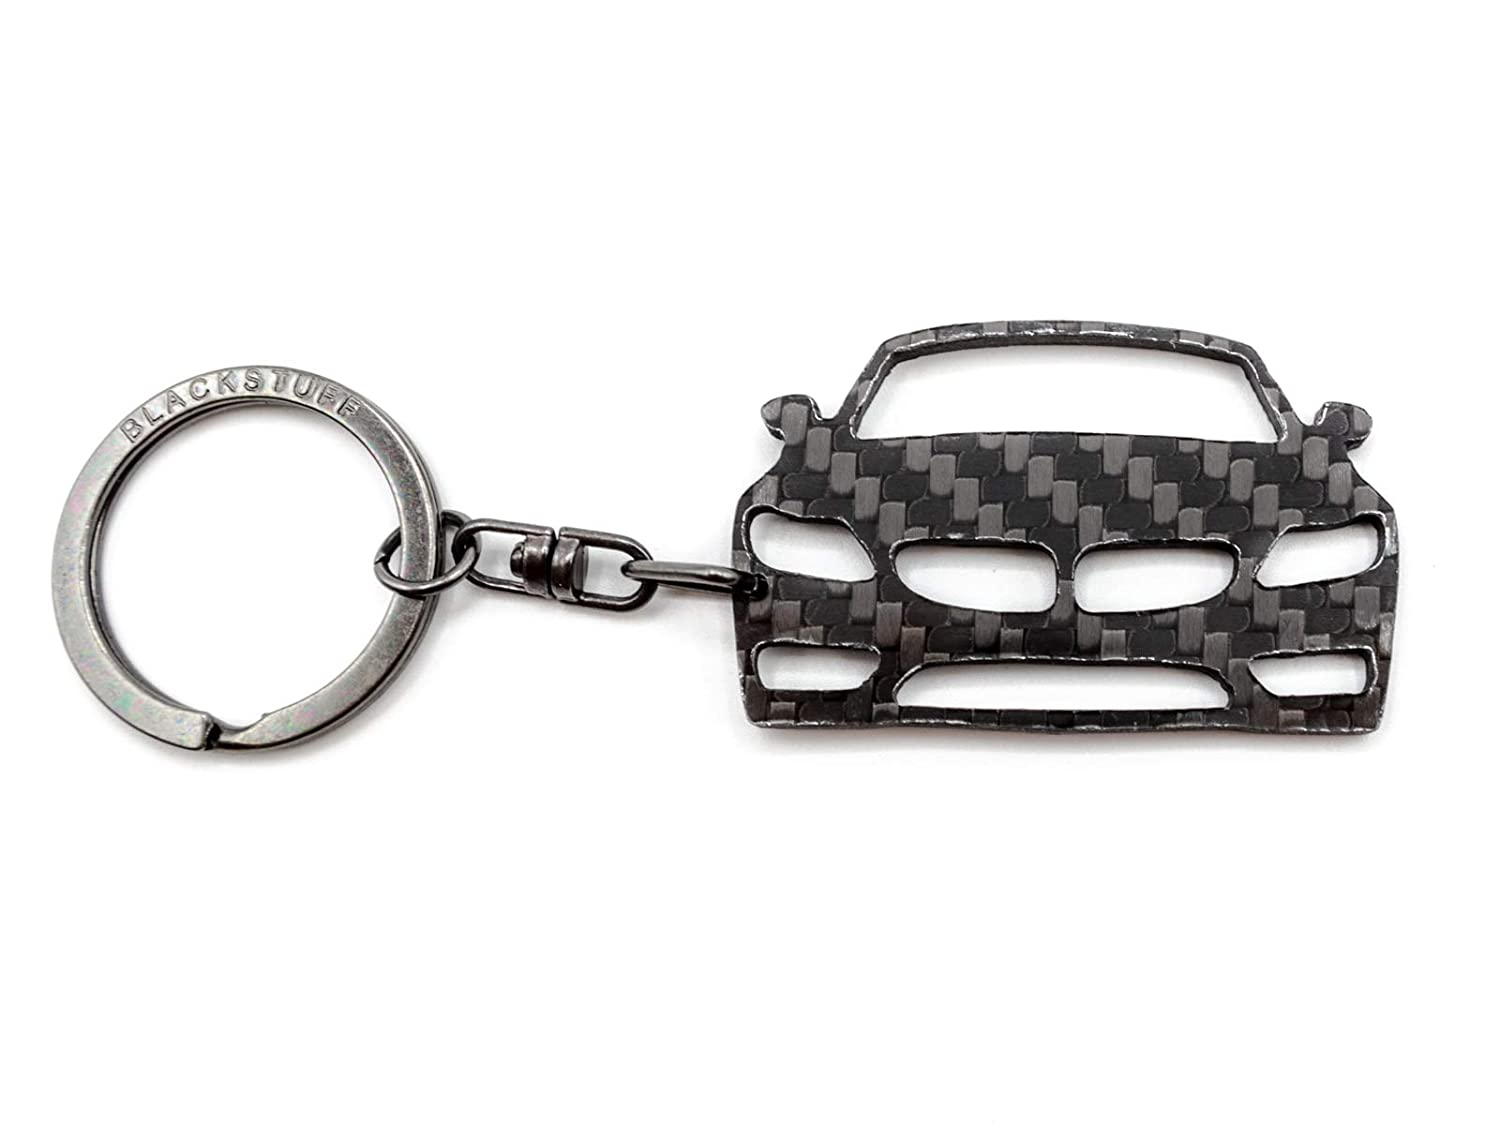 BlackStuff Carbon Fiber Keychain Keyring Ring Holder Compatible with Cooper S JCW F55 F56 F57 2013-2019 BS-772